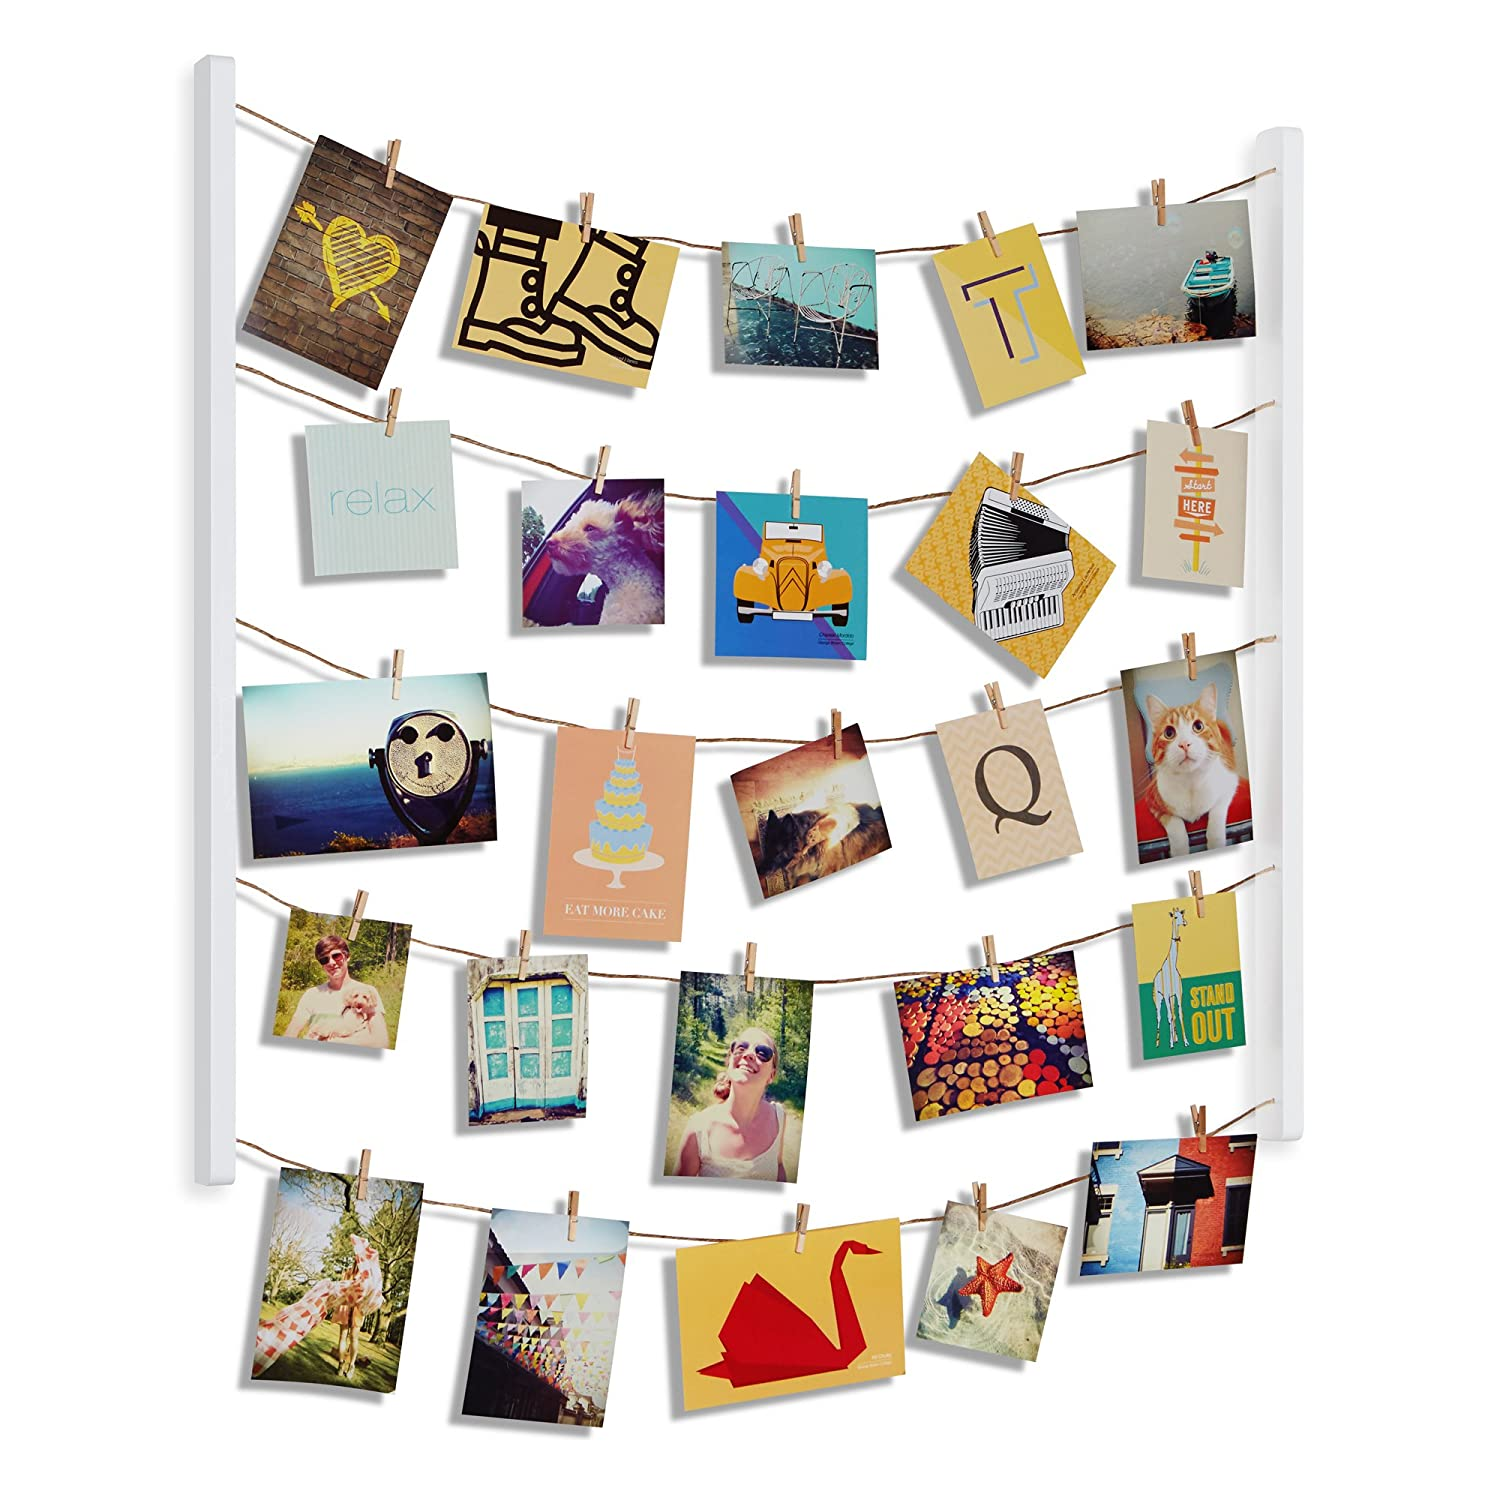 Umbra Hangit Photo Display - DIY Picture Frames Collage Set Includes Picture Hanging Wire Twine Cords, Natural Wood Wall Mounts and Clothespin Clips for Hanging Photos, Prints and Artwork (Black) 315000-040